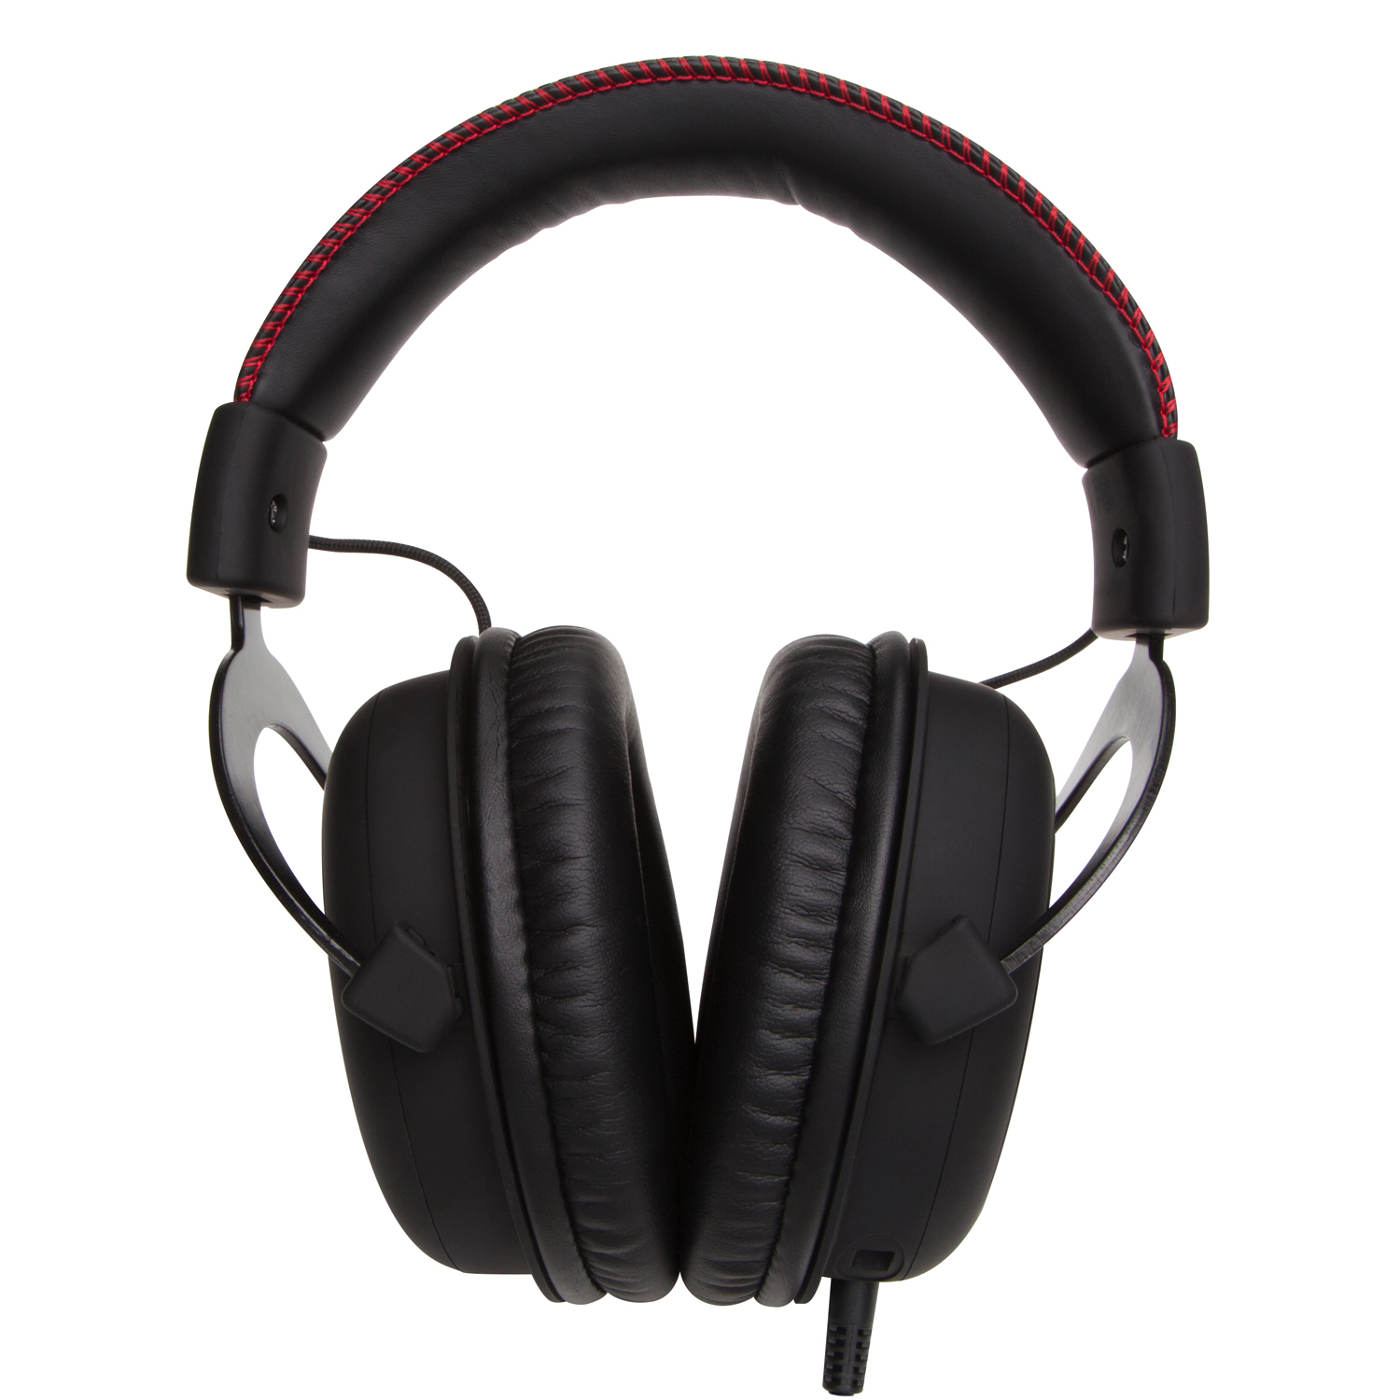 kingston hyperx cloud casque micro filaire pour gamer comparer avec. Black Bedroom Furniture Sets. Home Design Ideas